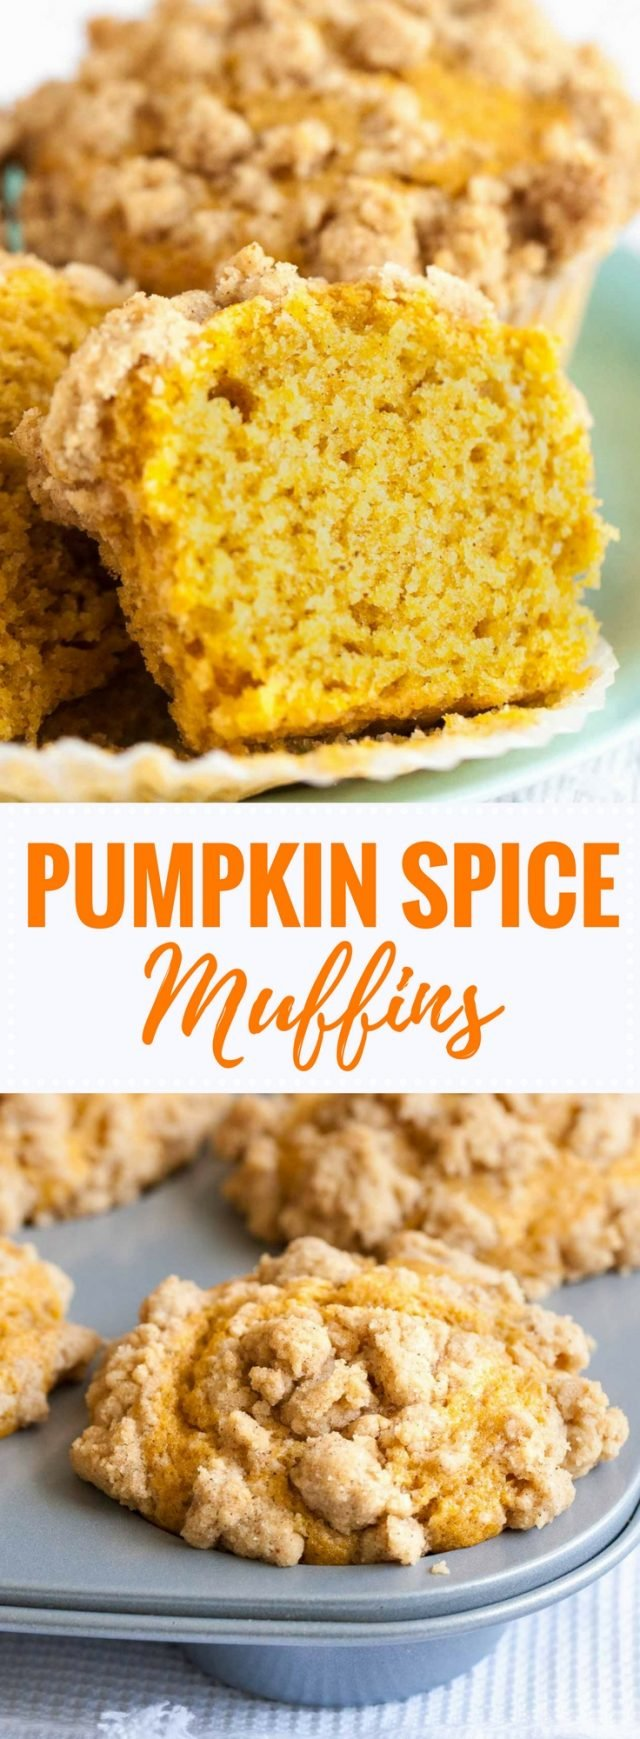 Pumpkin Spice Muffins are so flavorful, have a tender texture and are so moist!  They are topped with crunchy pumpkin spice crumbs and take only 10 minutes to whip up. An easy pumpkin muffin recipe that tastes delicious for breakfast, brunch, or as a snack!